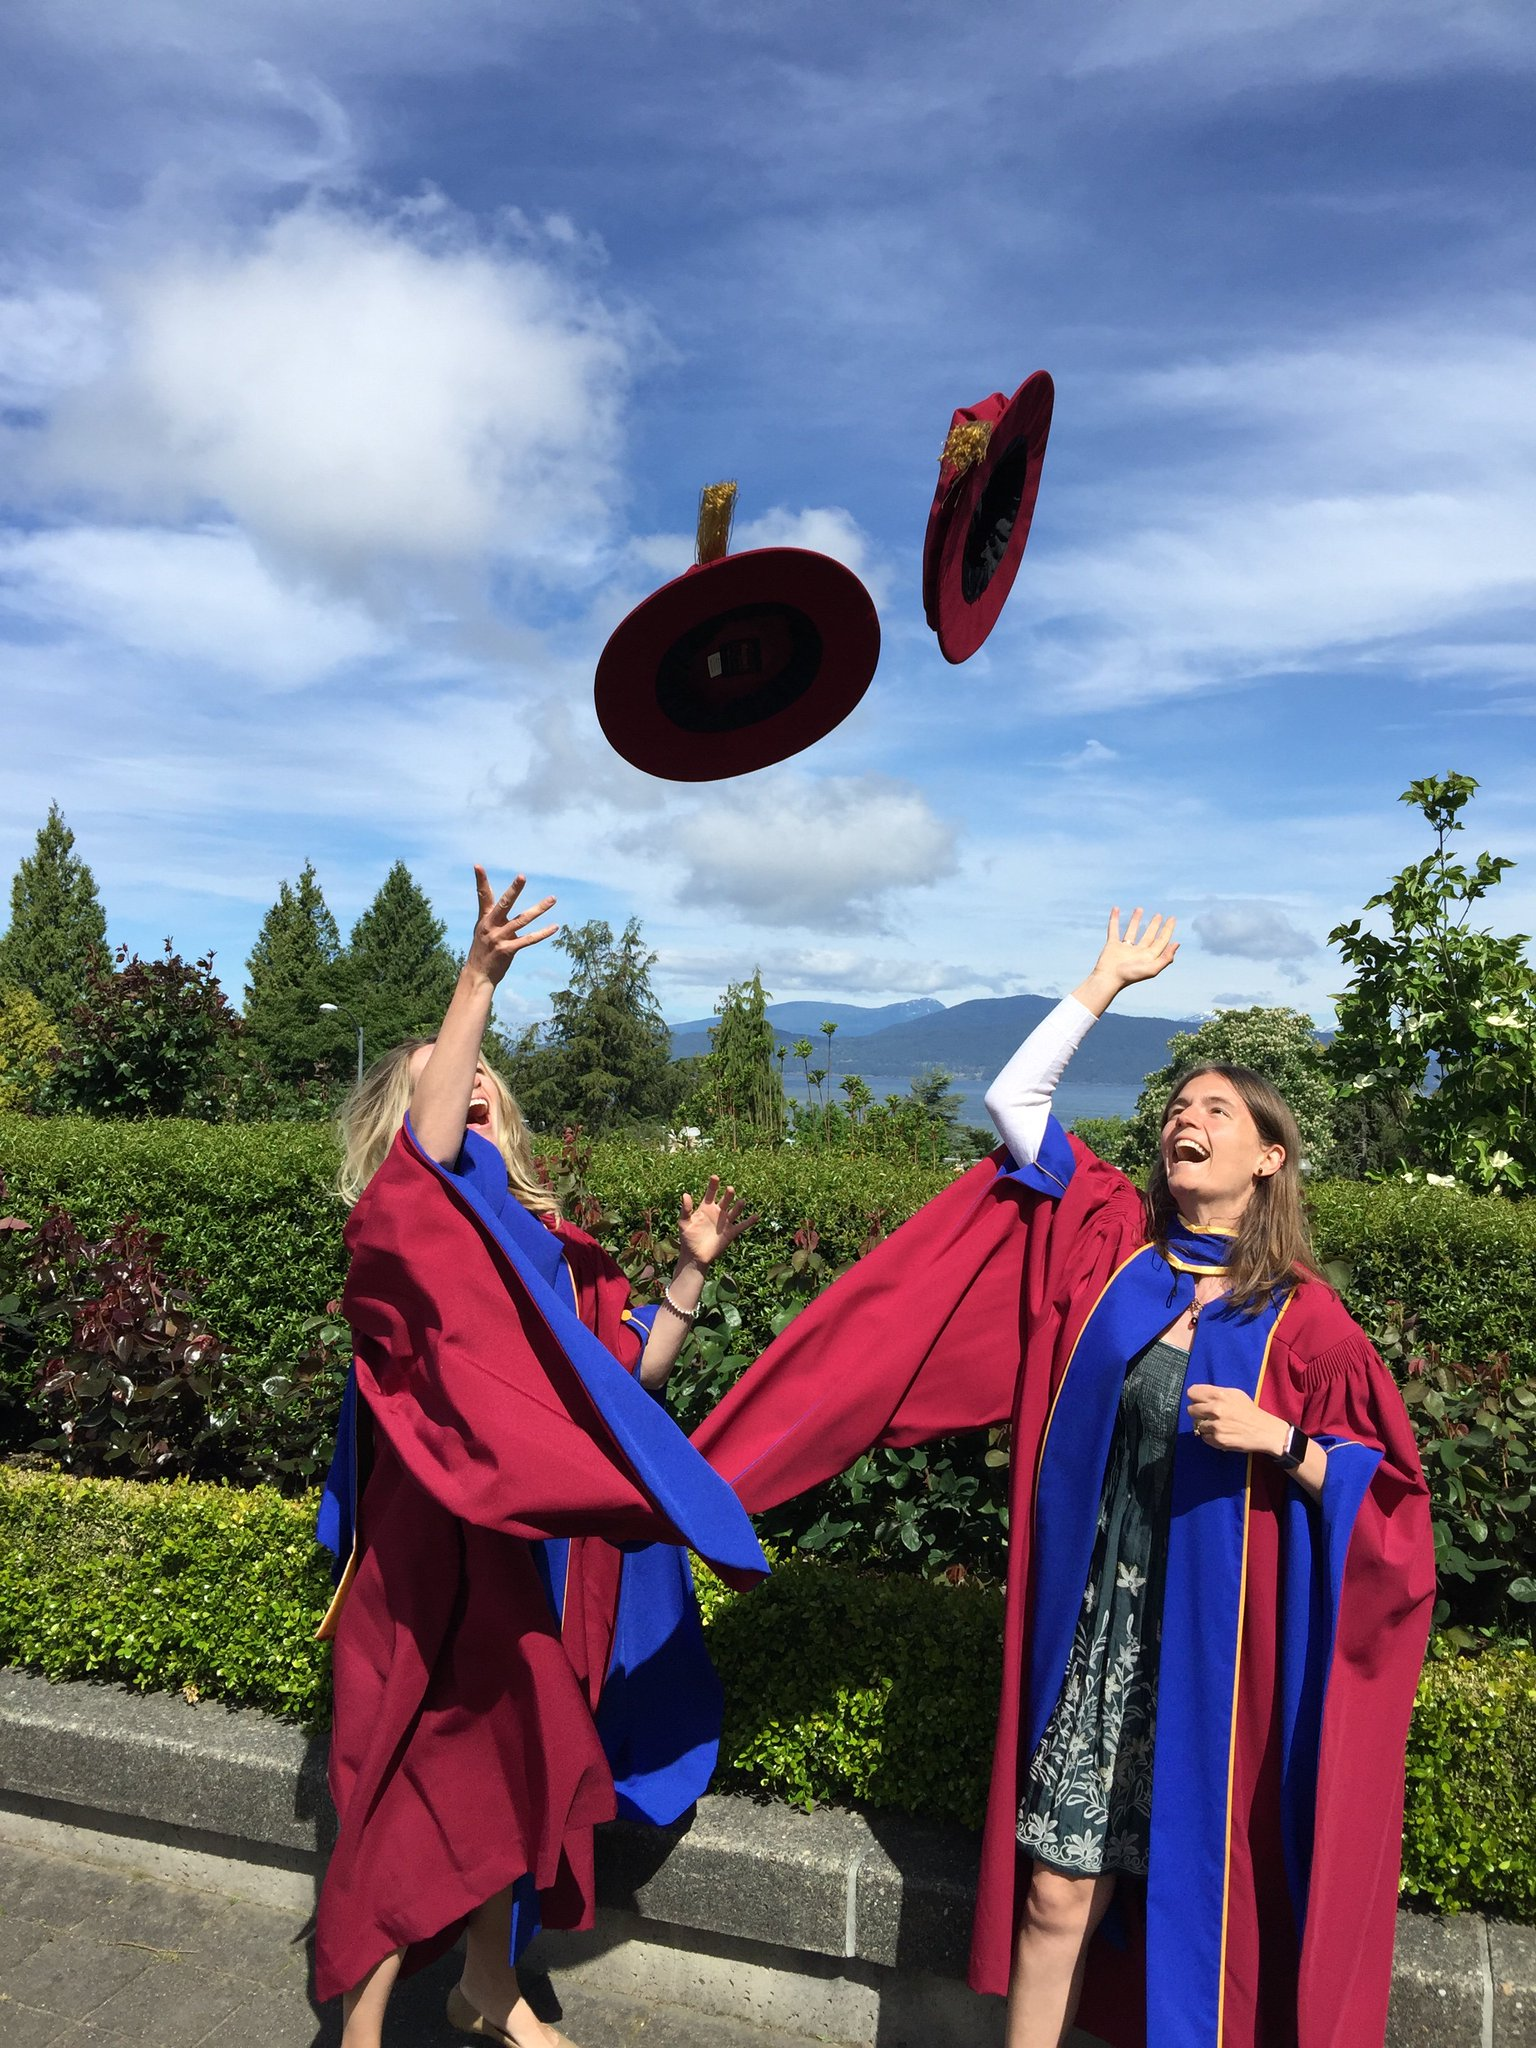 Congratulations to newly-minted Dr. @leighgabel and Dr. Anna Chudyk - #UBC PhD grads at yesterday's ceremony! #UBCGrad @UBC https://t.co/RLJcT8GQBs